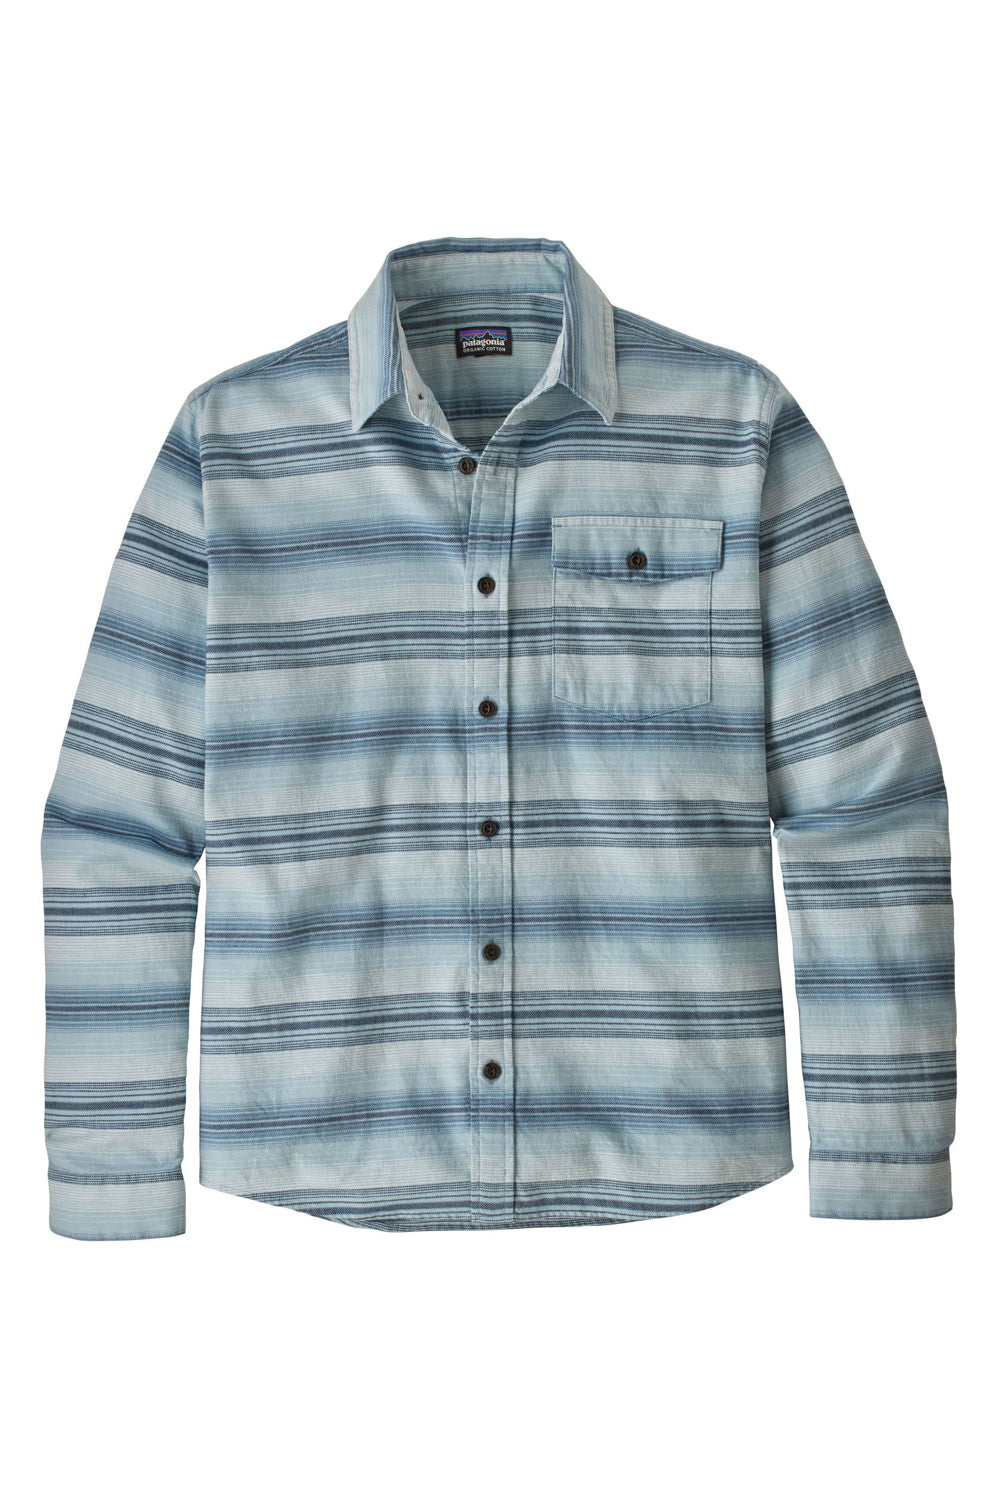 Patagonia Men's Light Weight FJord Flannel Shirt